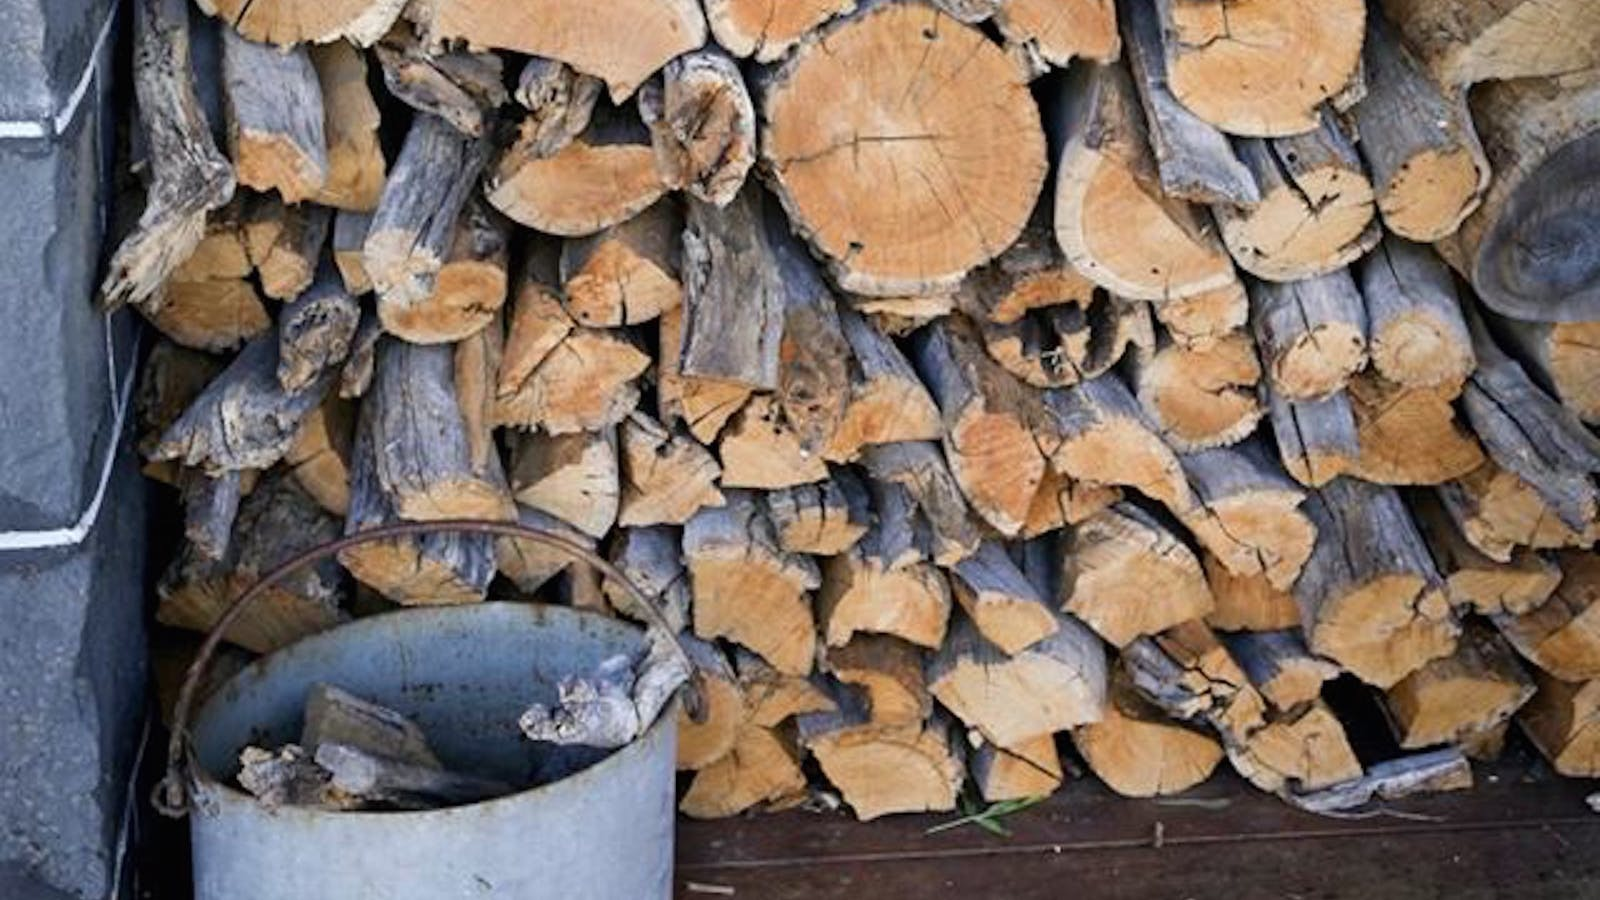 Wood chopped and stacked ready for your use in the cold nights.